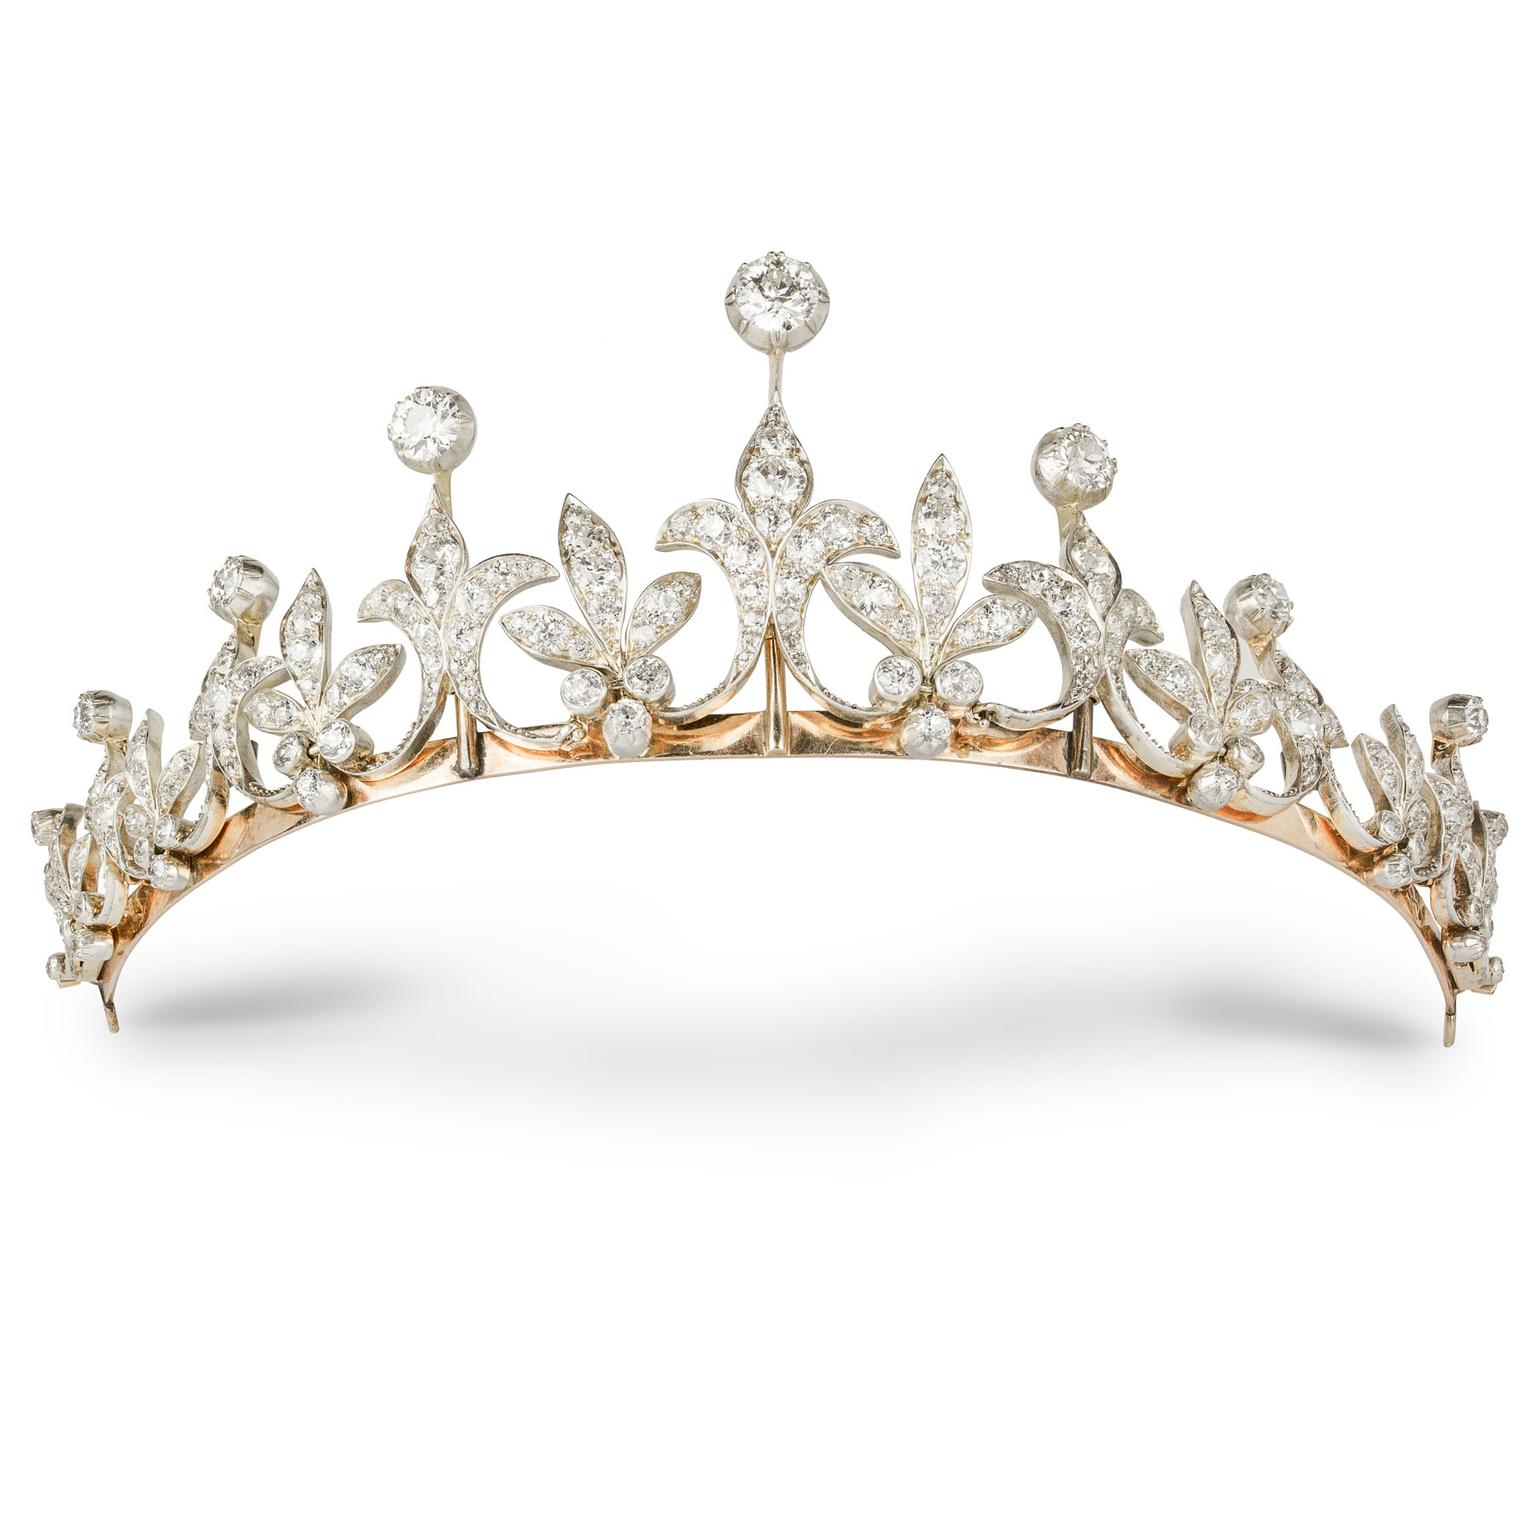 Bentley & Skinner like this American tiara from 1890